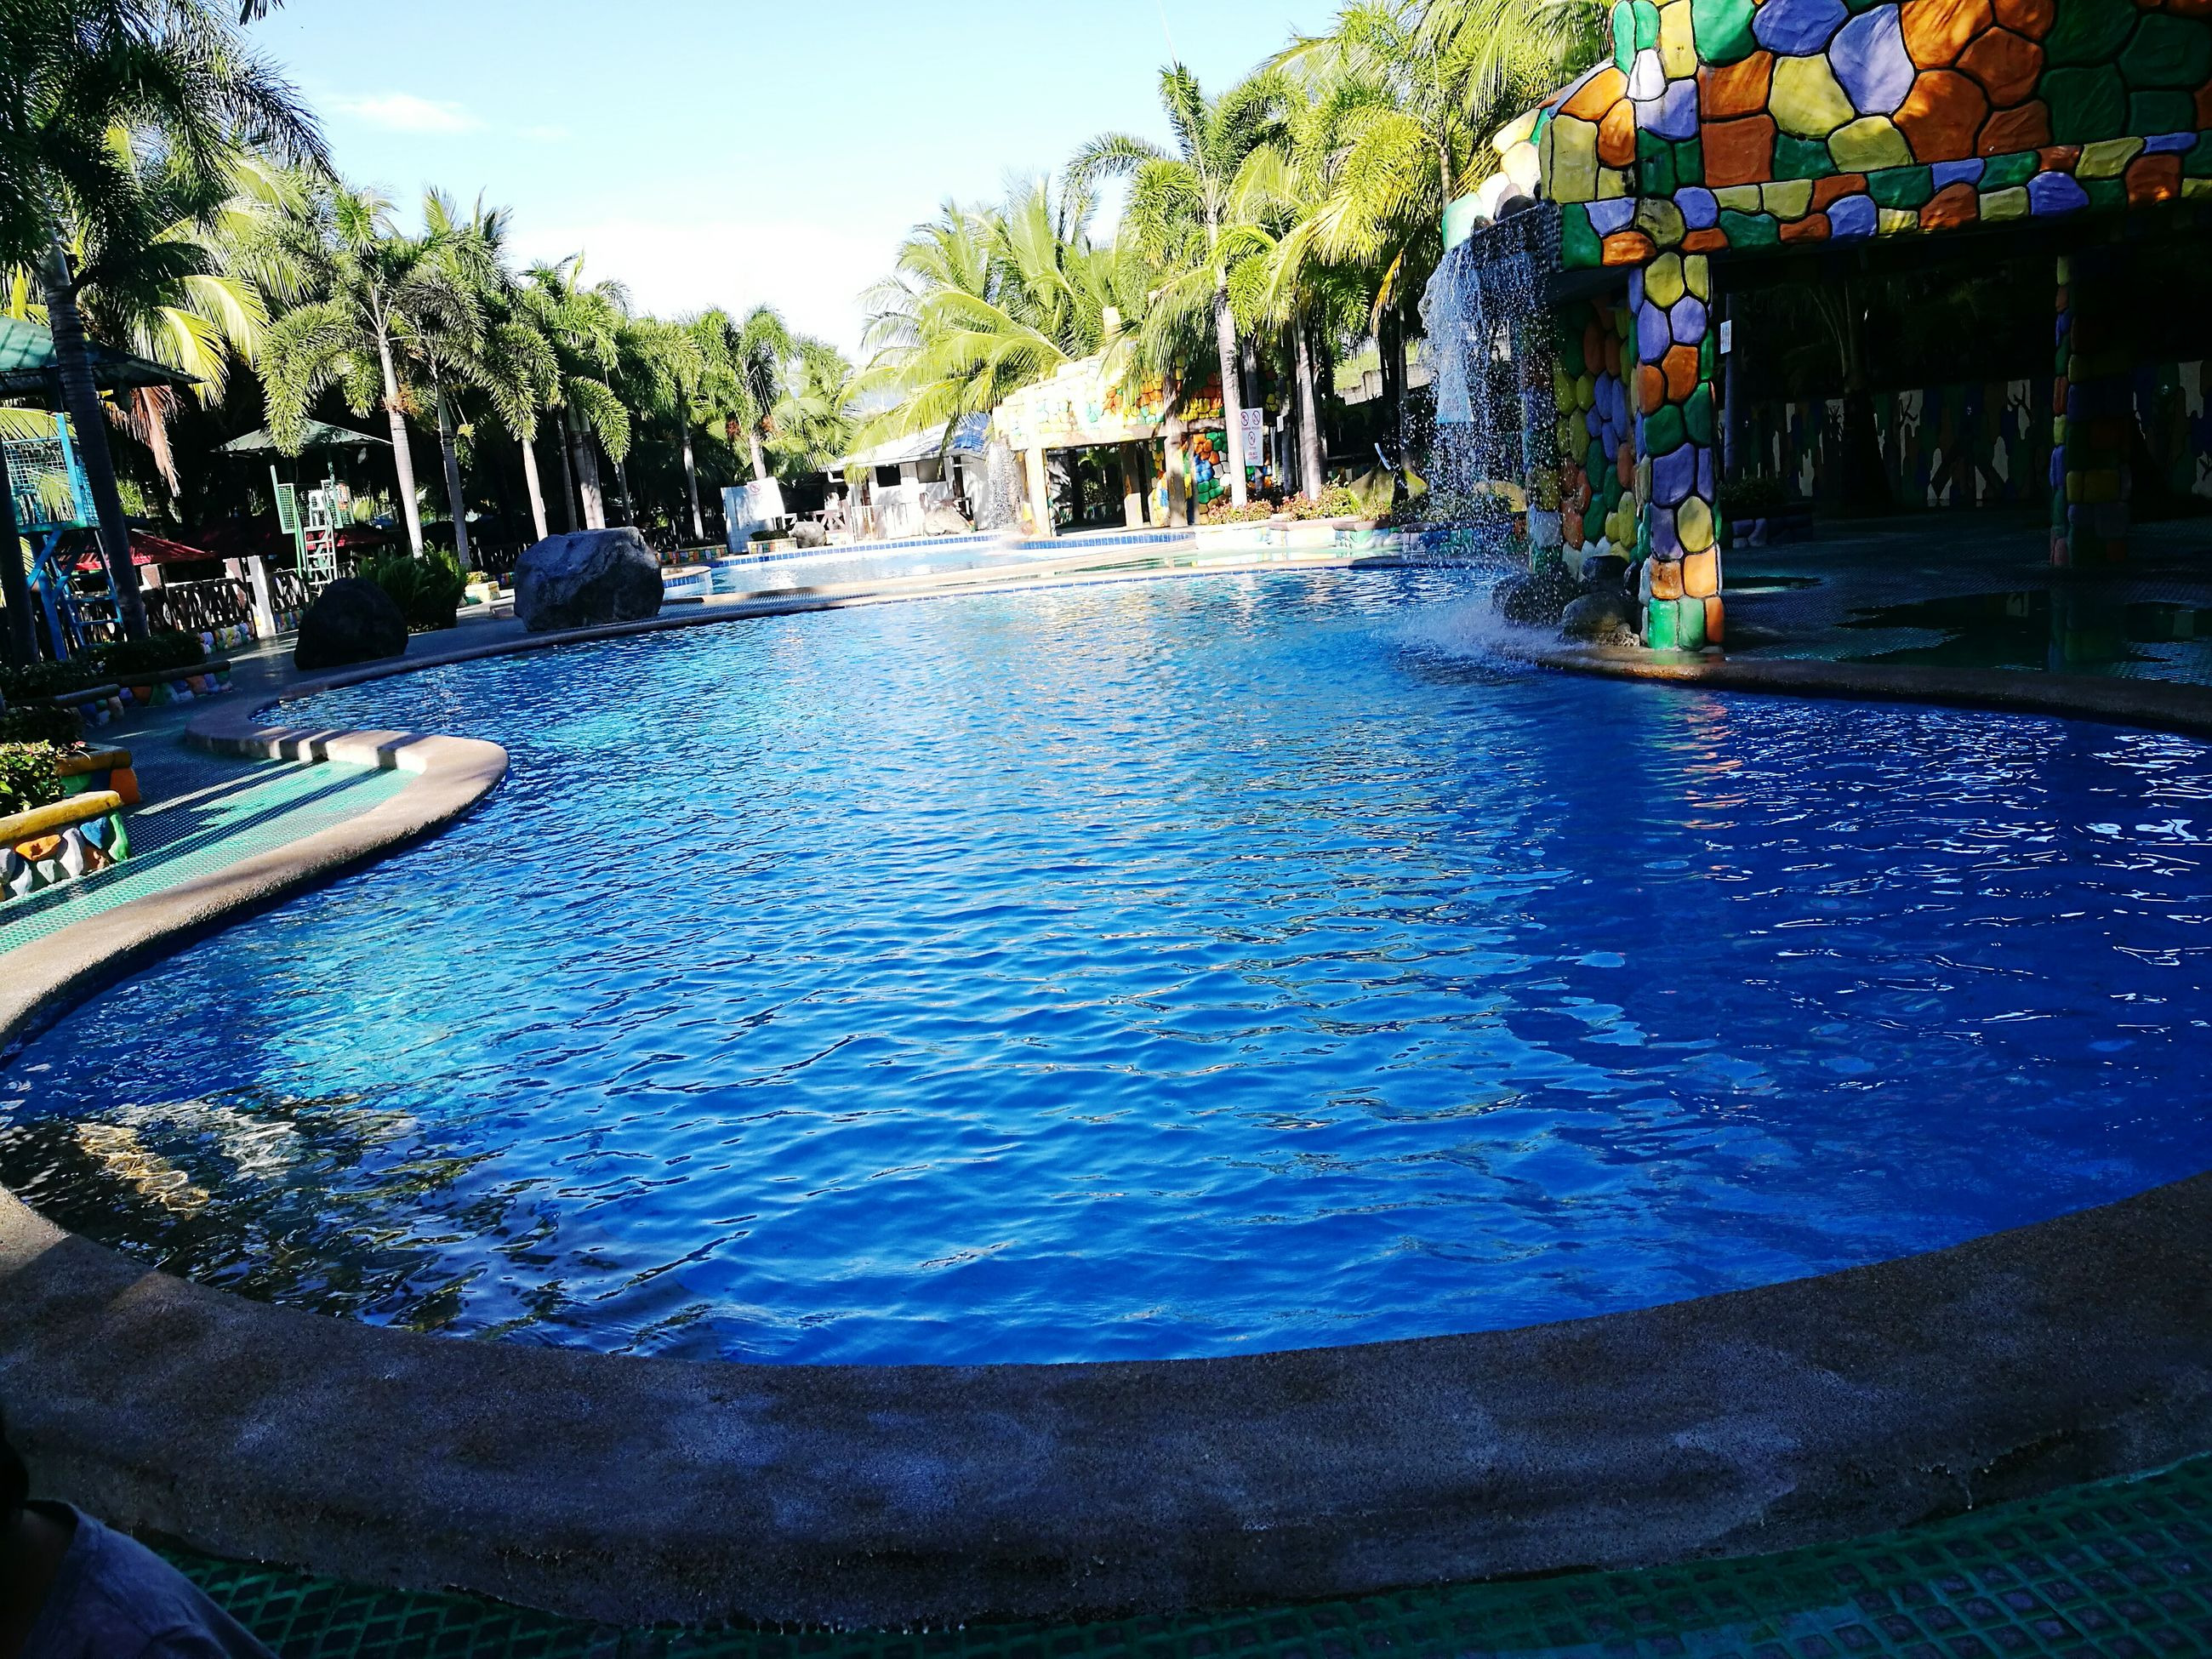 water, swimming pool, tree, blue, outdoors, leisure activity, water park, day, summer, real people, sky, nature, water slide